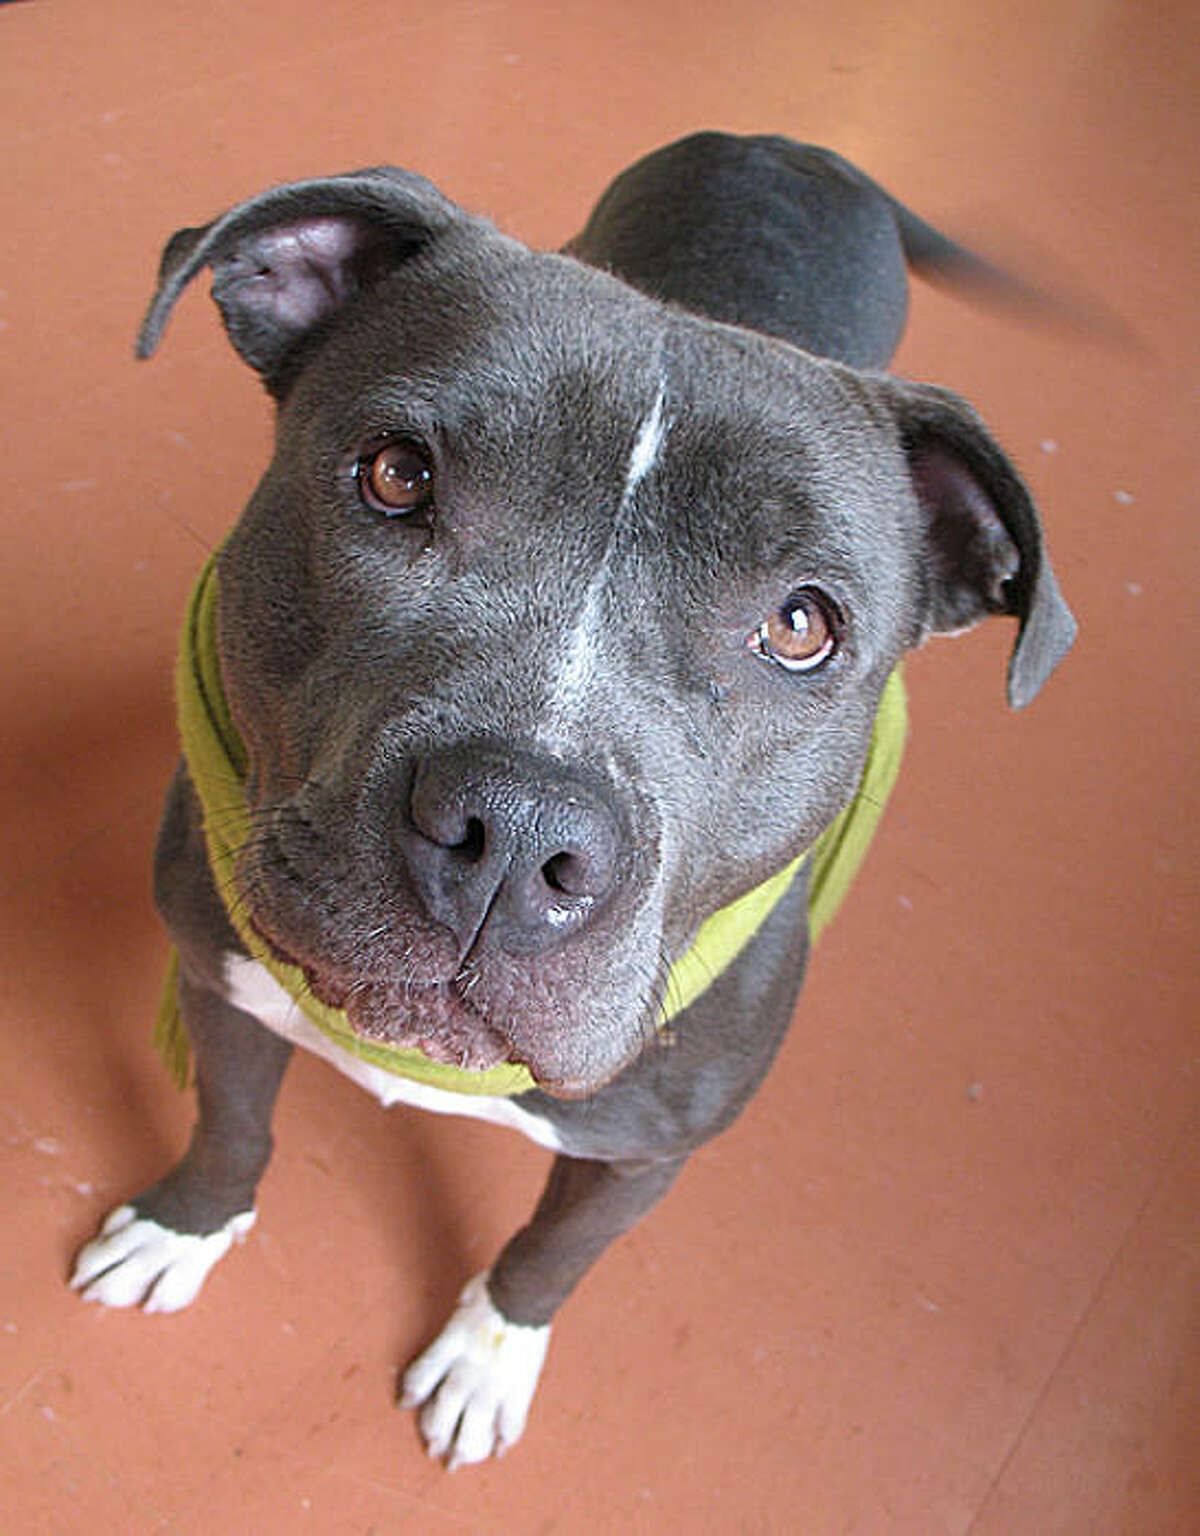 Lolo, a pit bull, was adopted from Oakland Animal Services by Meg and Thomas Cosby.